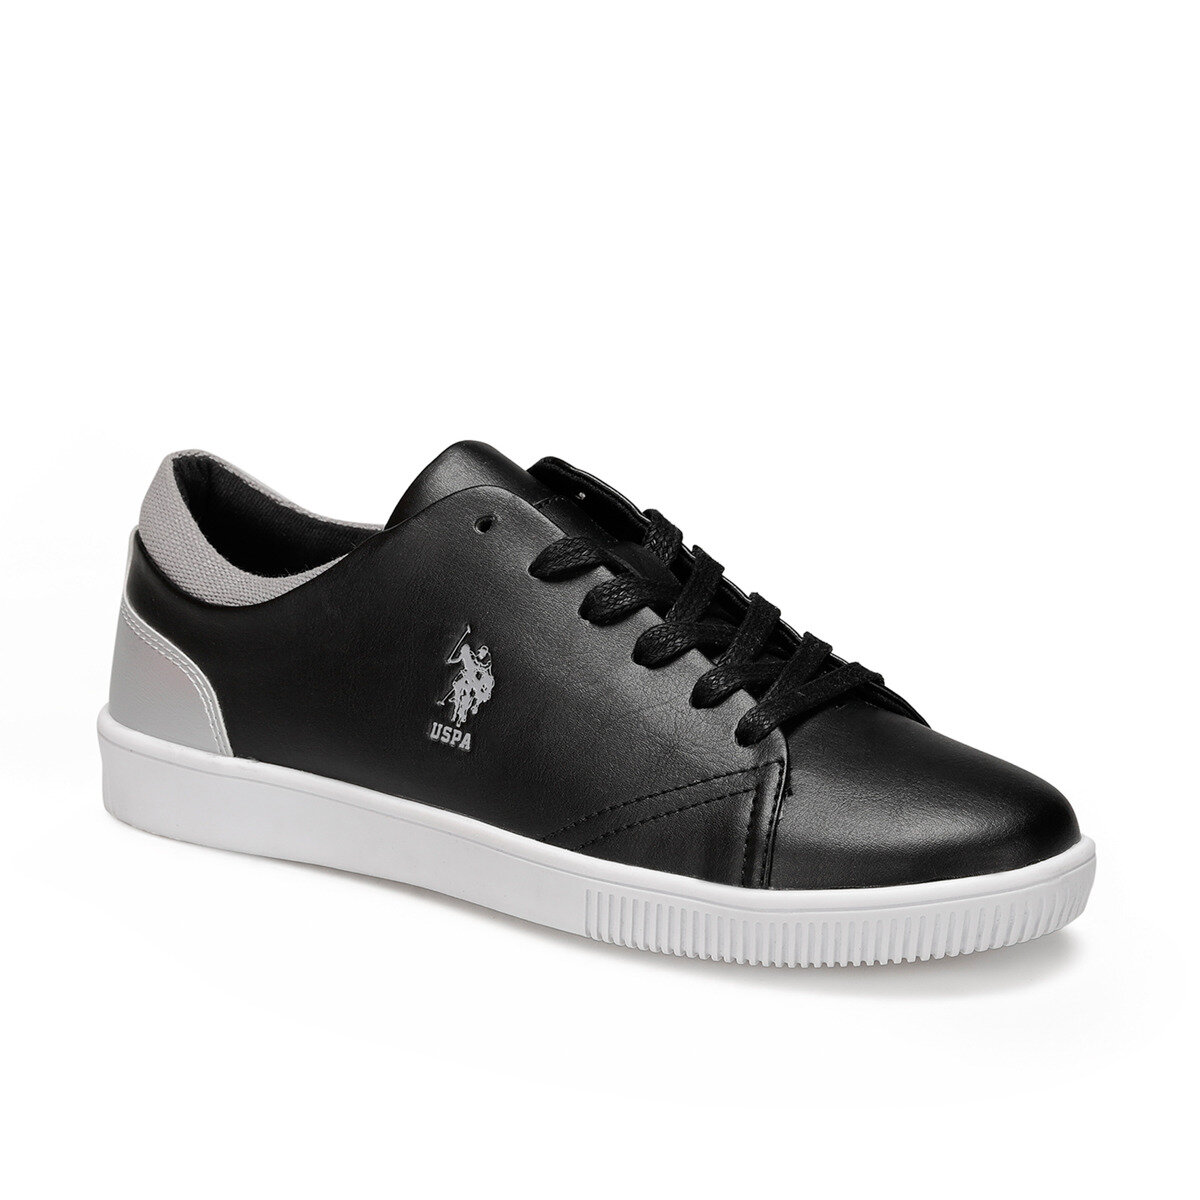 FLO REST Black Women Basic Casual Shoes U.S. POLO ASSN.